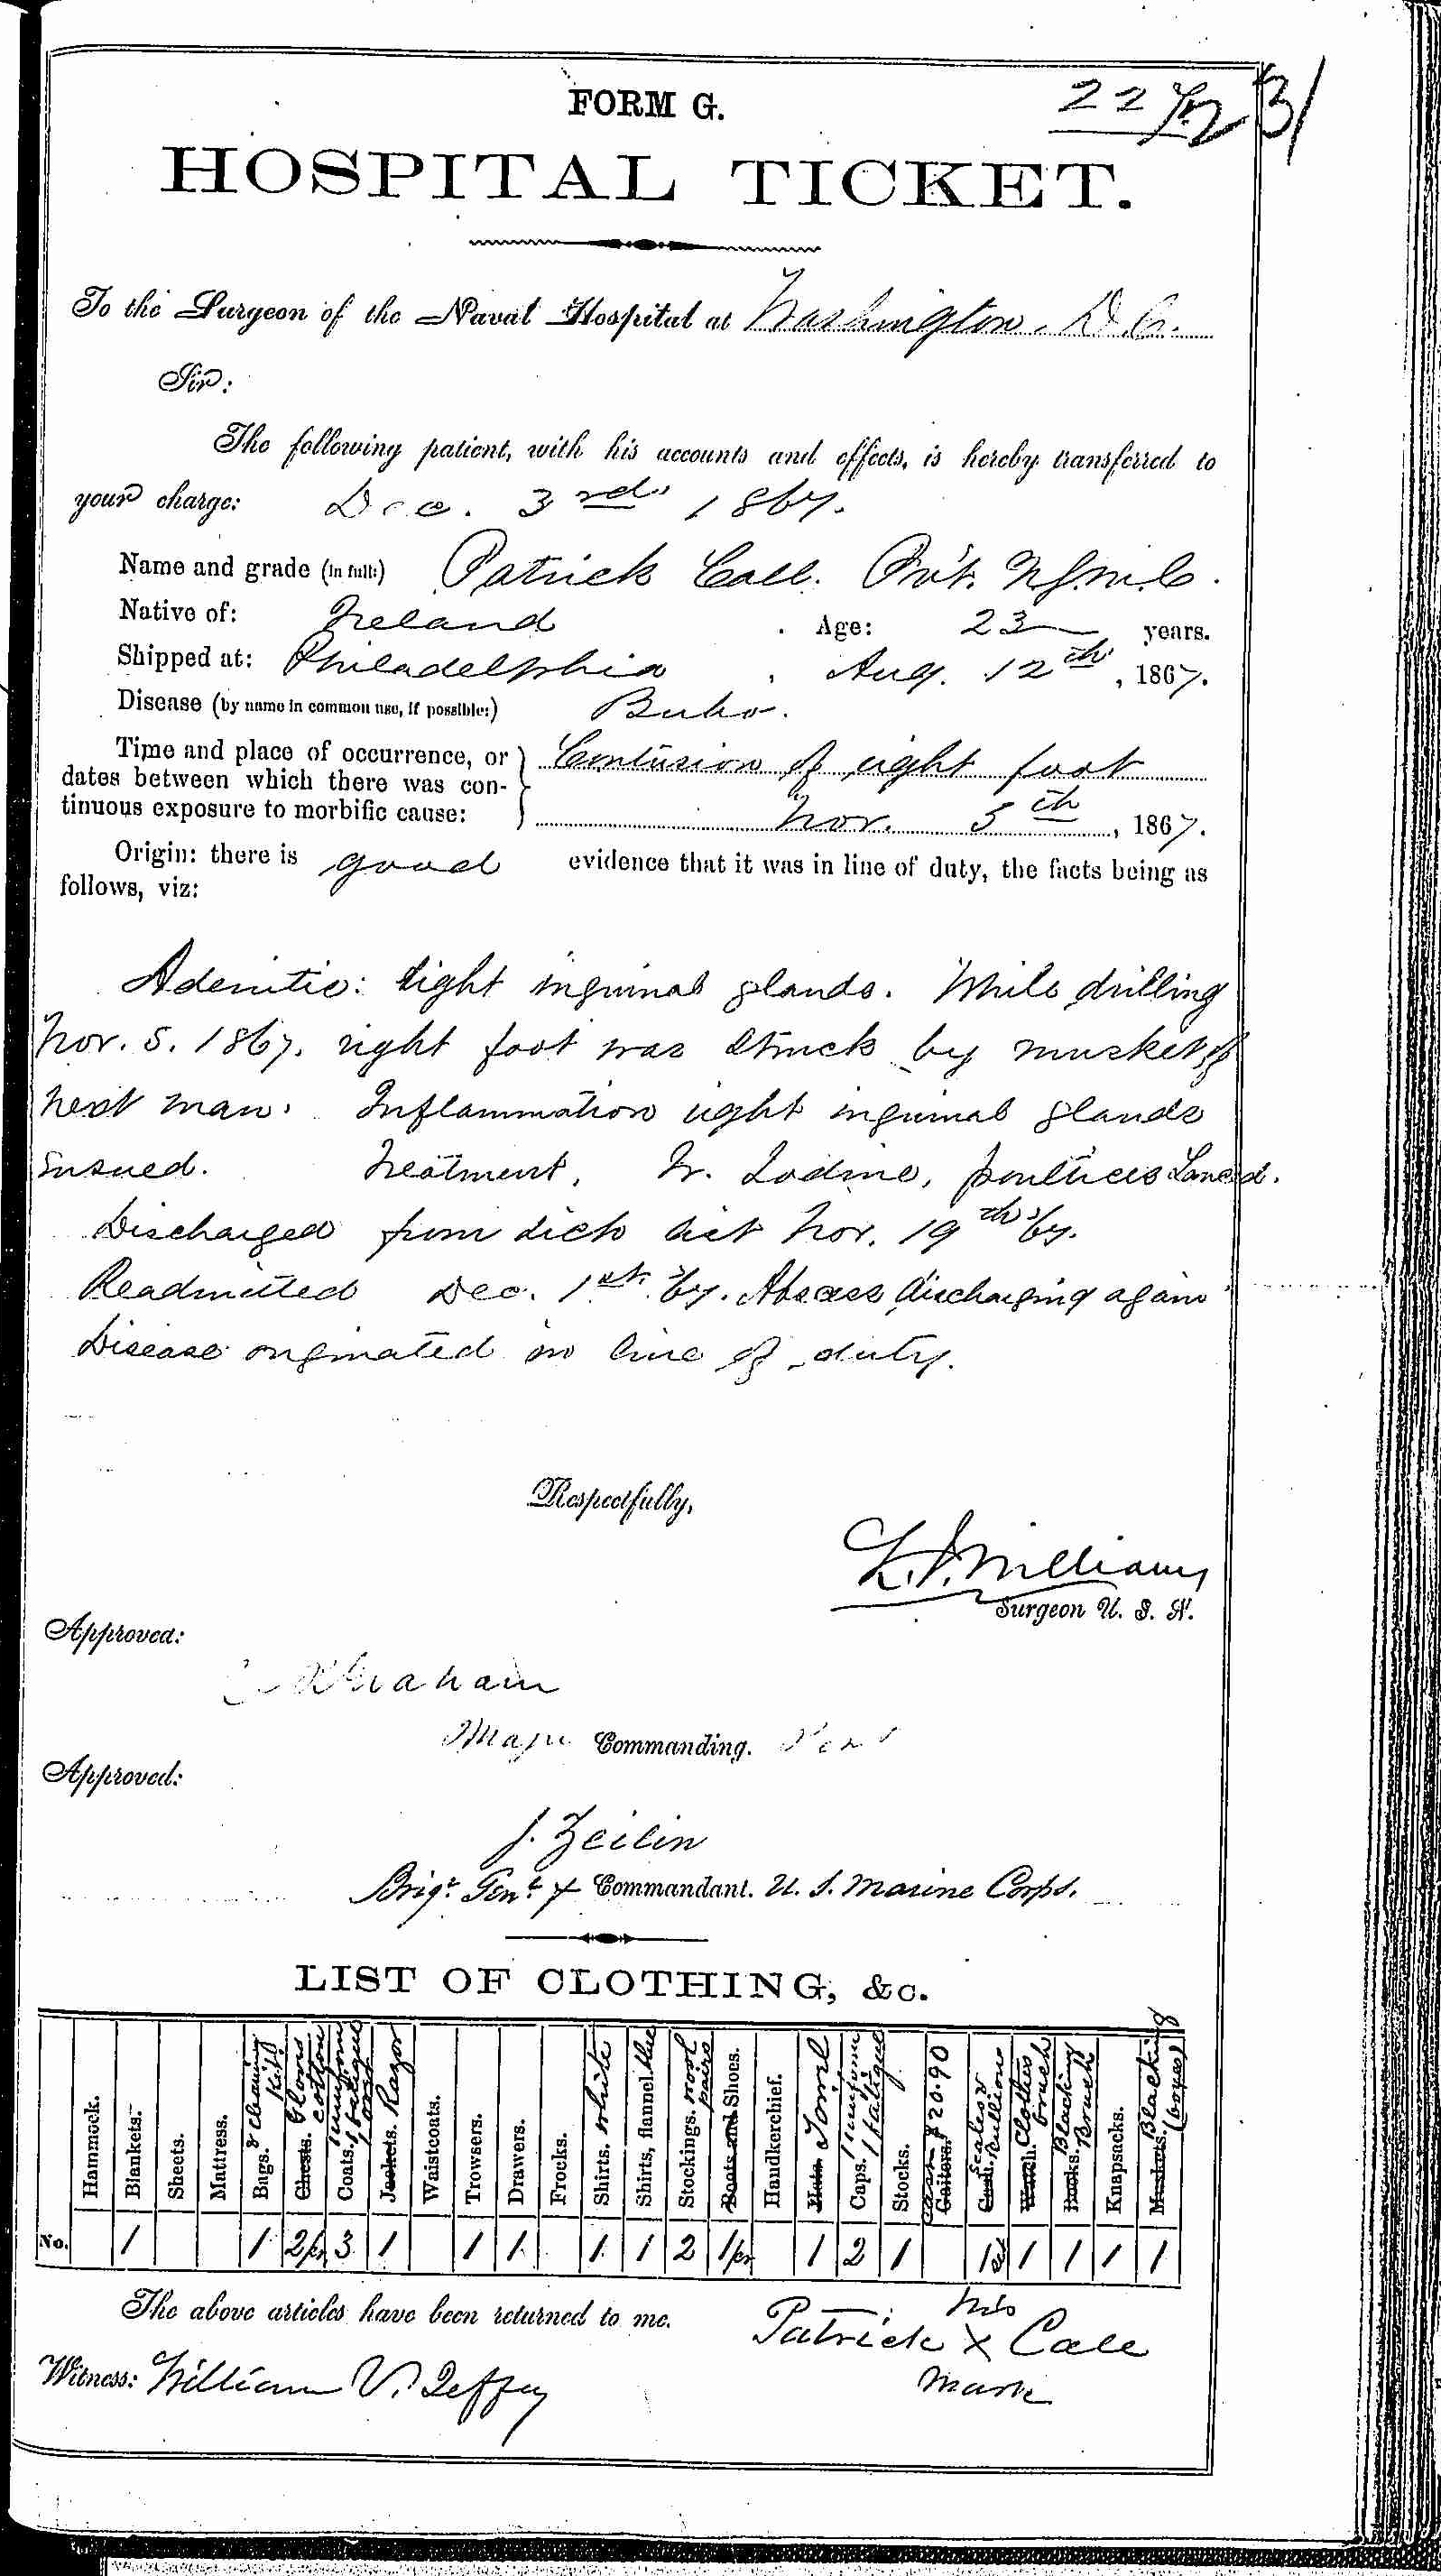 Entry for Patrick Call (page 1 of 2) in the log Hospital Tickets and Case Papers - Naval Hospital - Washington, D.C. - 1866-68